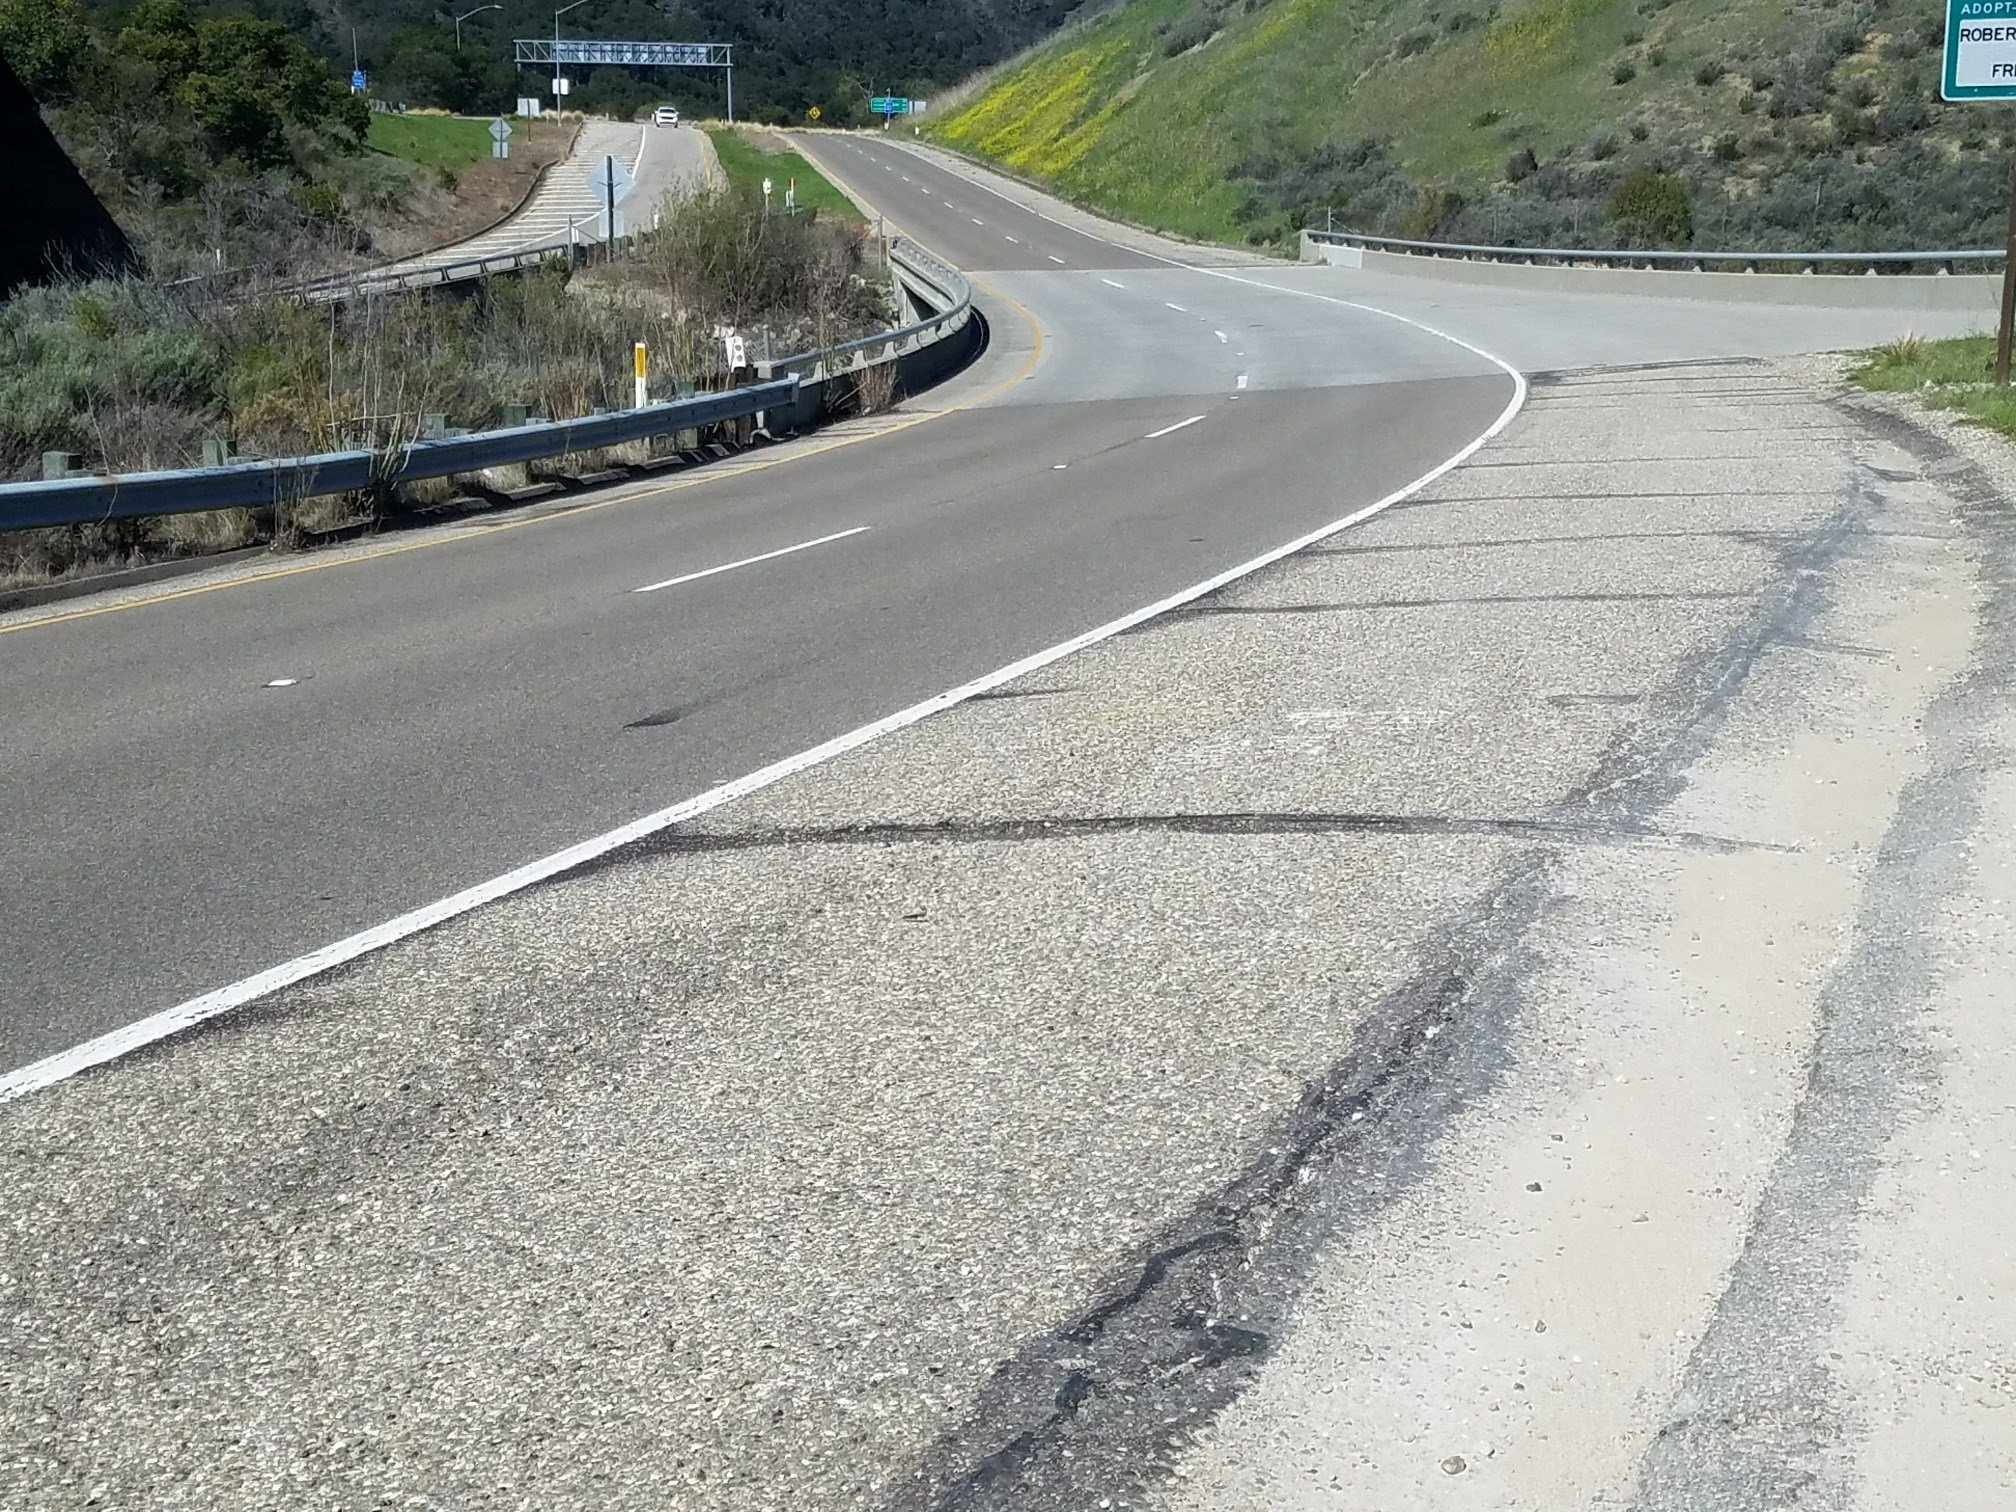 Portion of Highway 1 to be repaved. (Photo courtesy Caltrans)